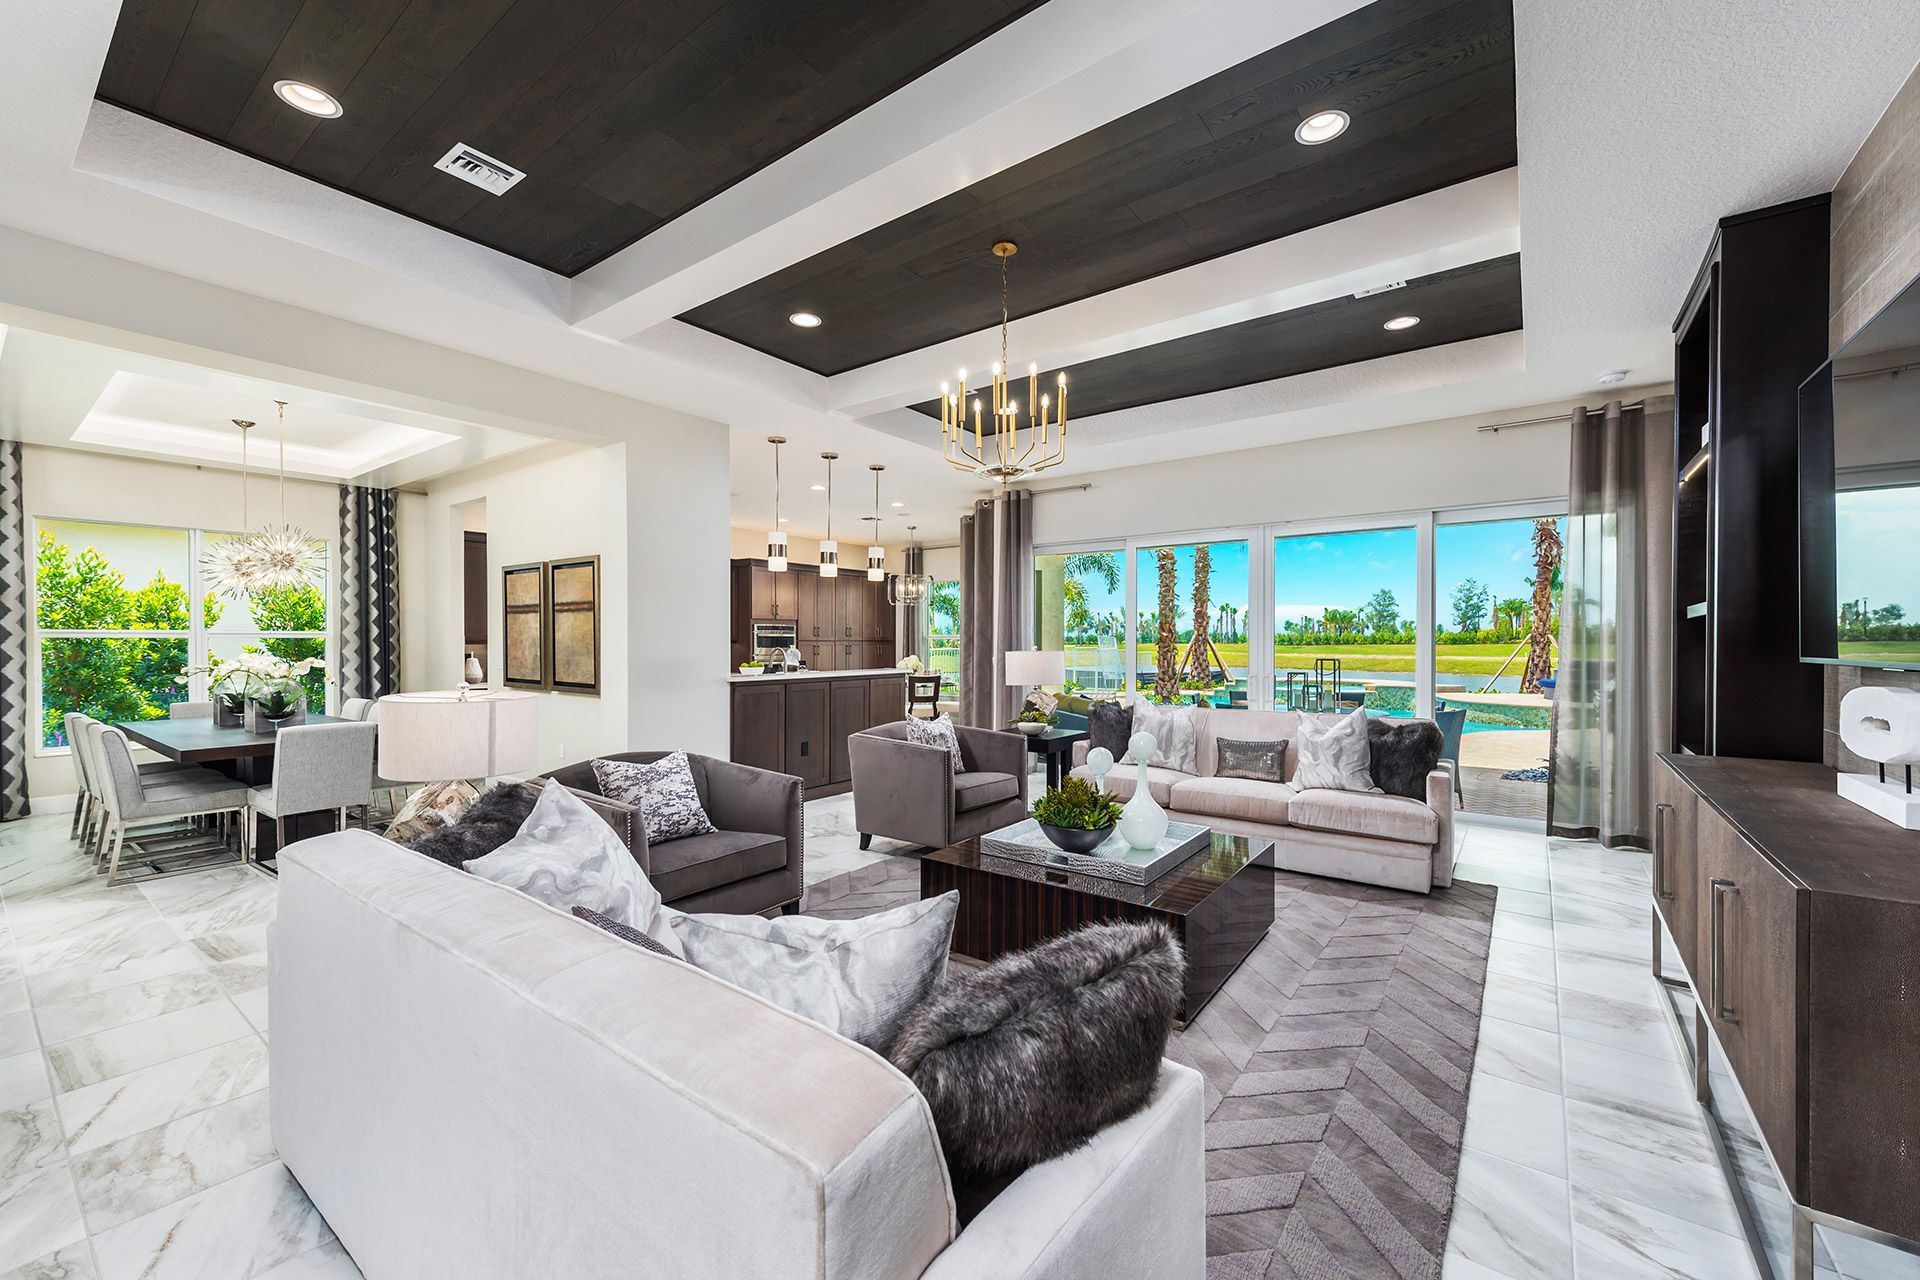 Living Area featured in the Julia By GL Homes in Martin-St. Lucie-Okeechobee Counties, FL